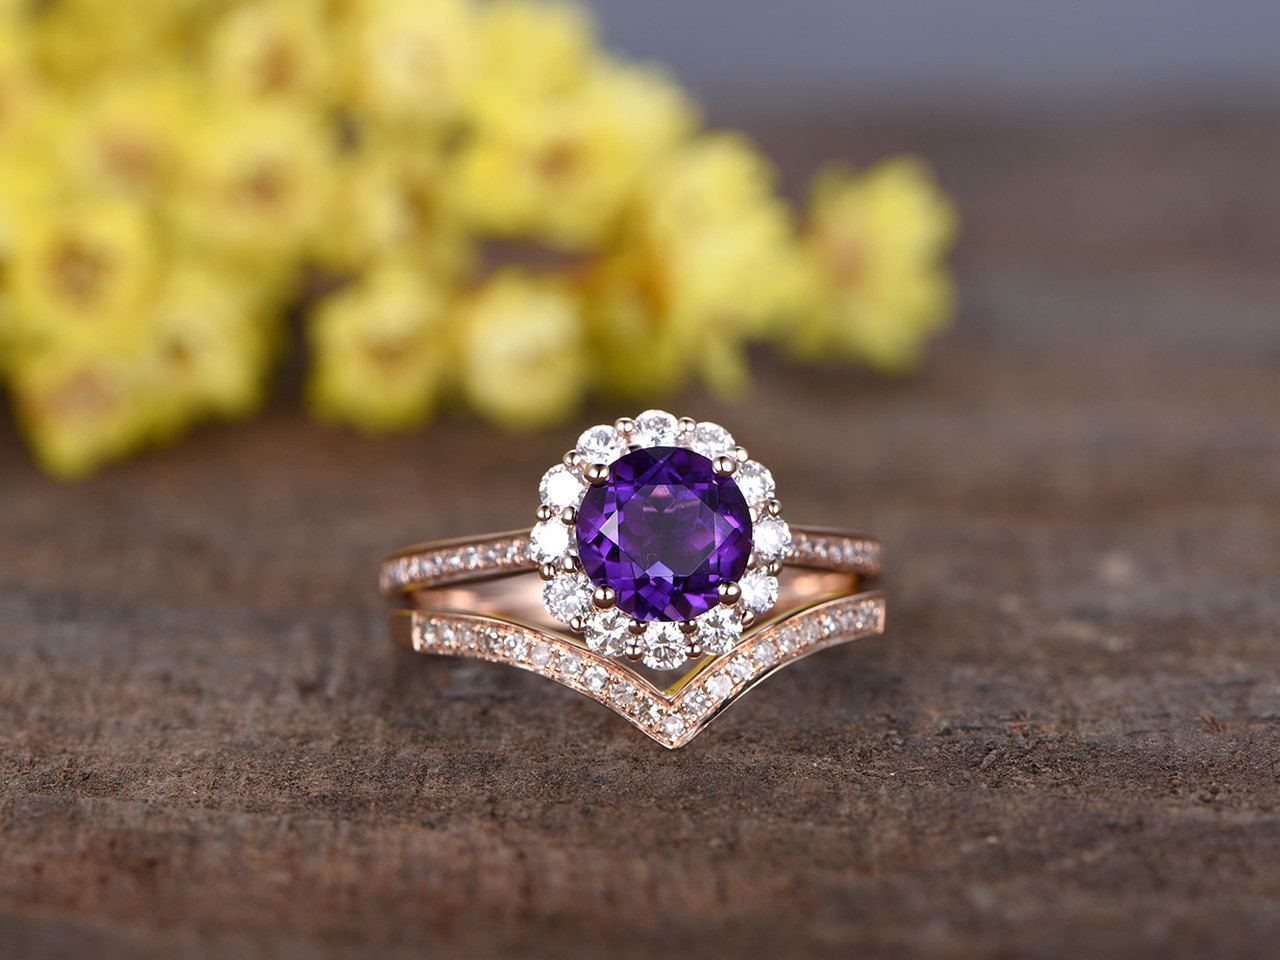 1.2 Carat Round Amethyst Wedding Ring Set 14k Rose Gold Flower Engagement  Ring Halo Moissanite And